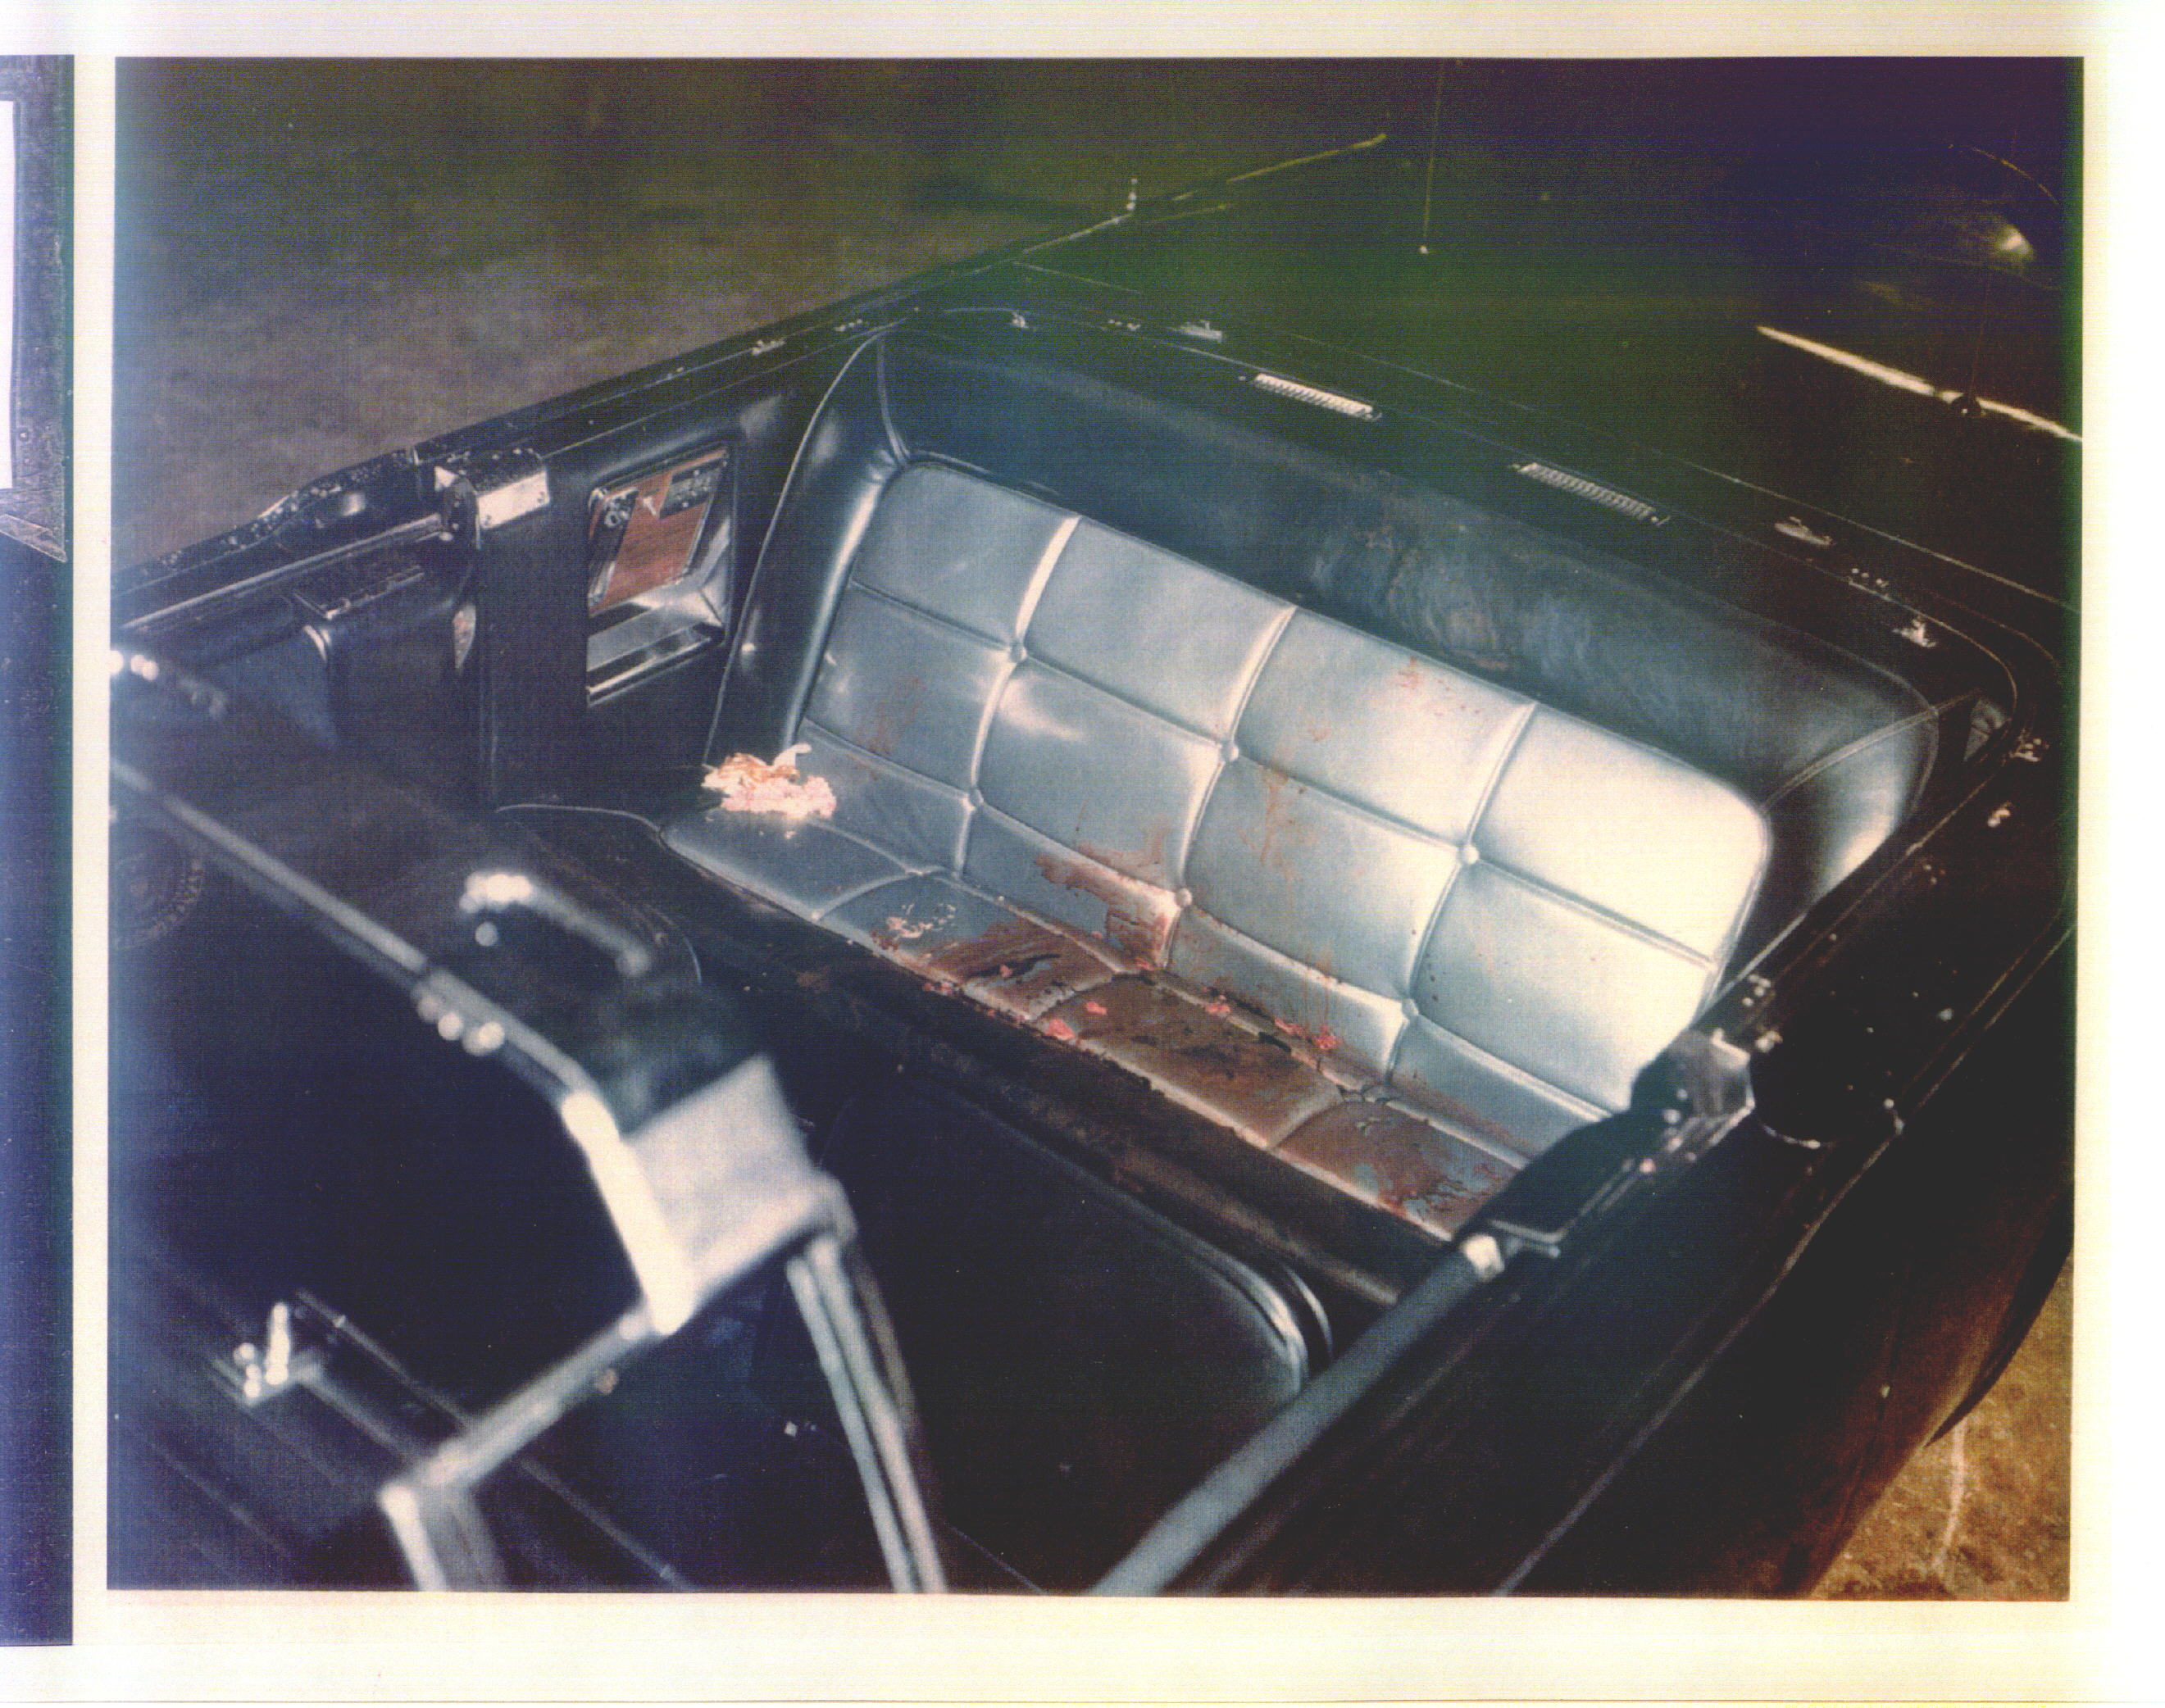 jfk assassination presidential limousine  ce352